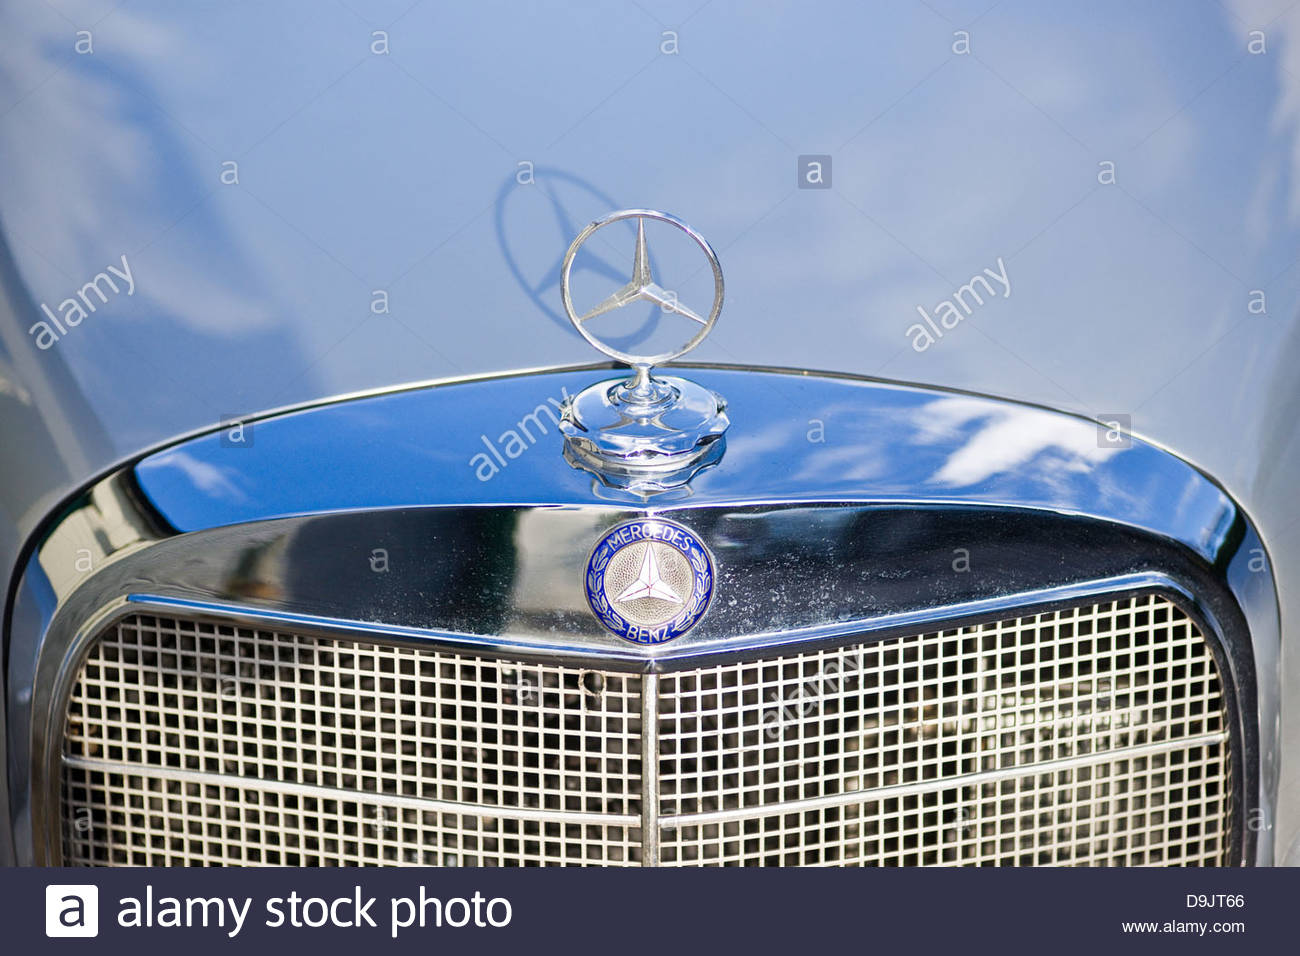 Mercedes benz car symbol stock photo royalty free image 57577134 mercedes benz car symbol biocorpaavc Image collections